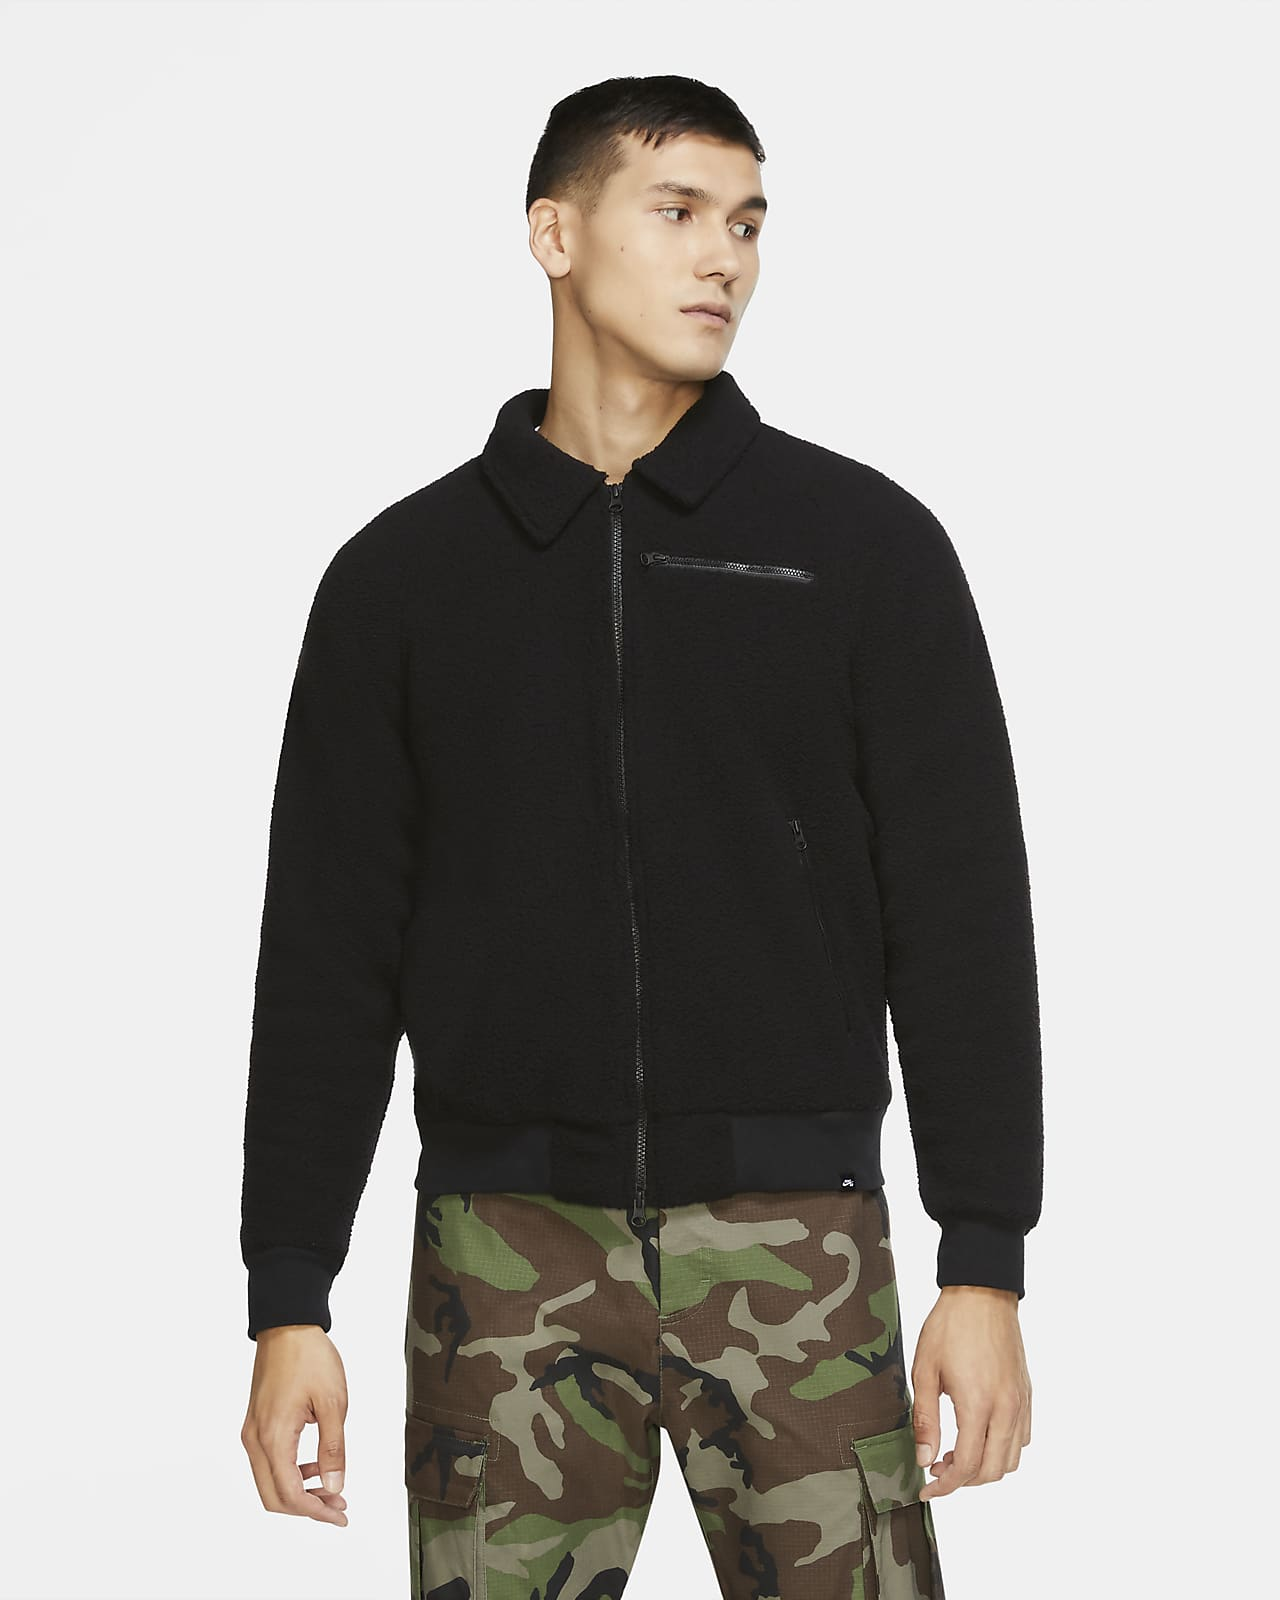 Nike SB Men's Sherpa Skate Jacket